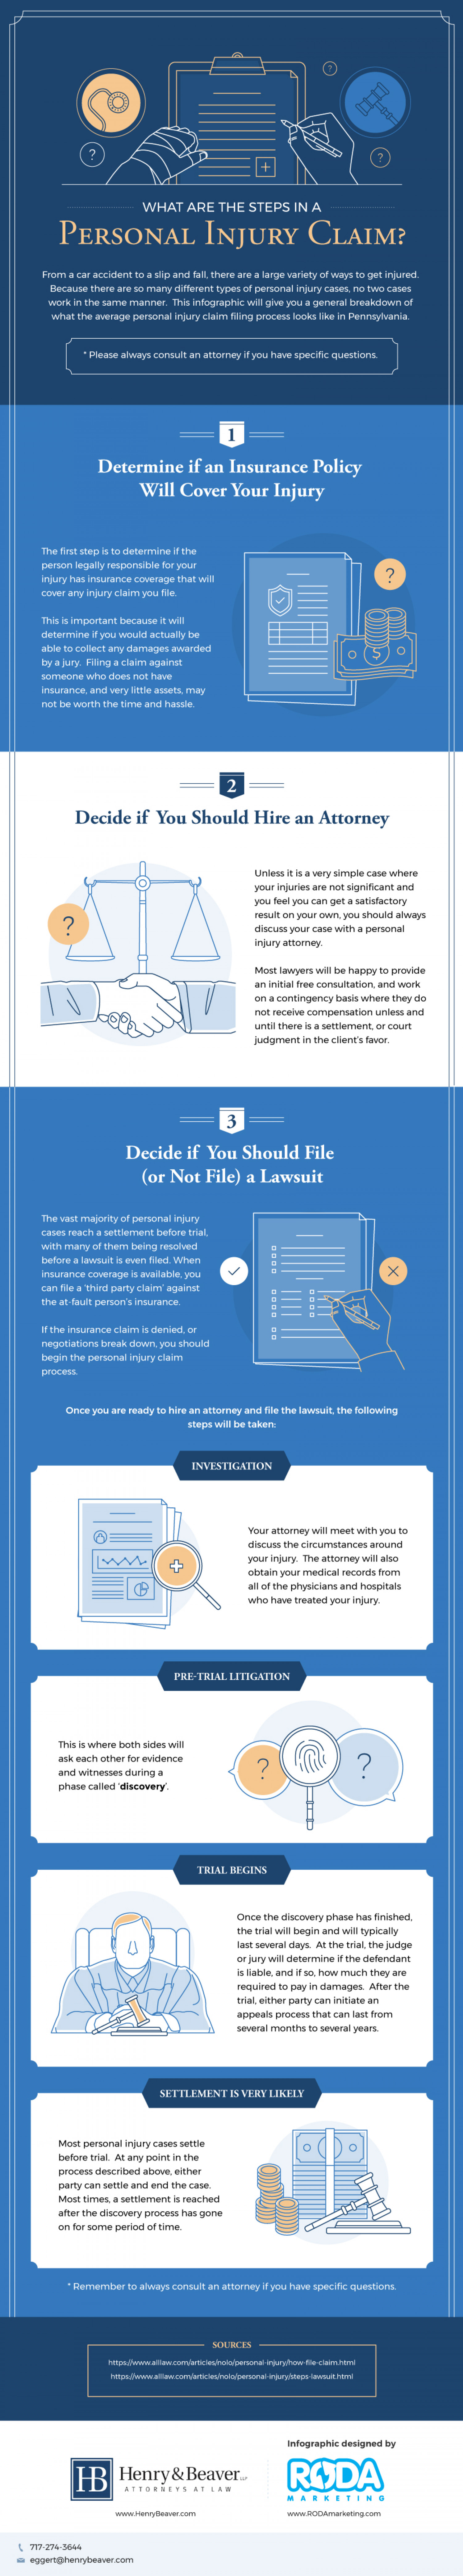 What Are The Steps In A Personal Injury Claim Infographic